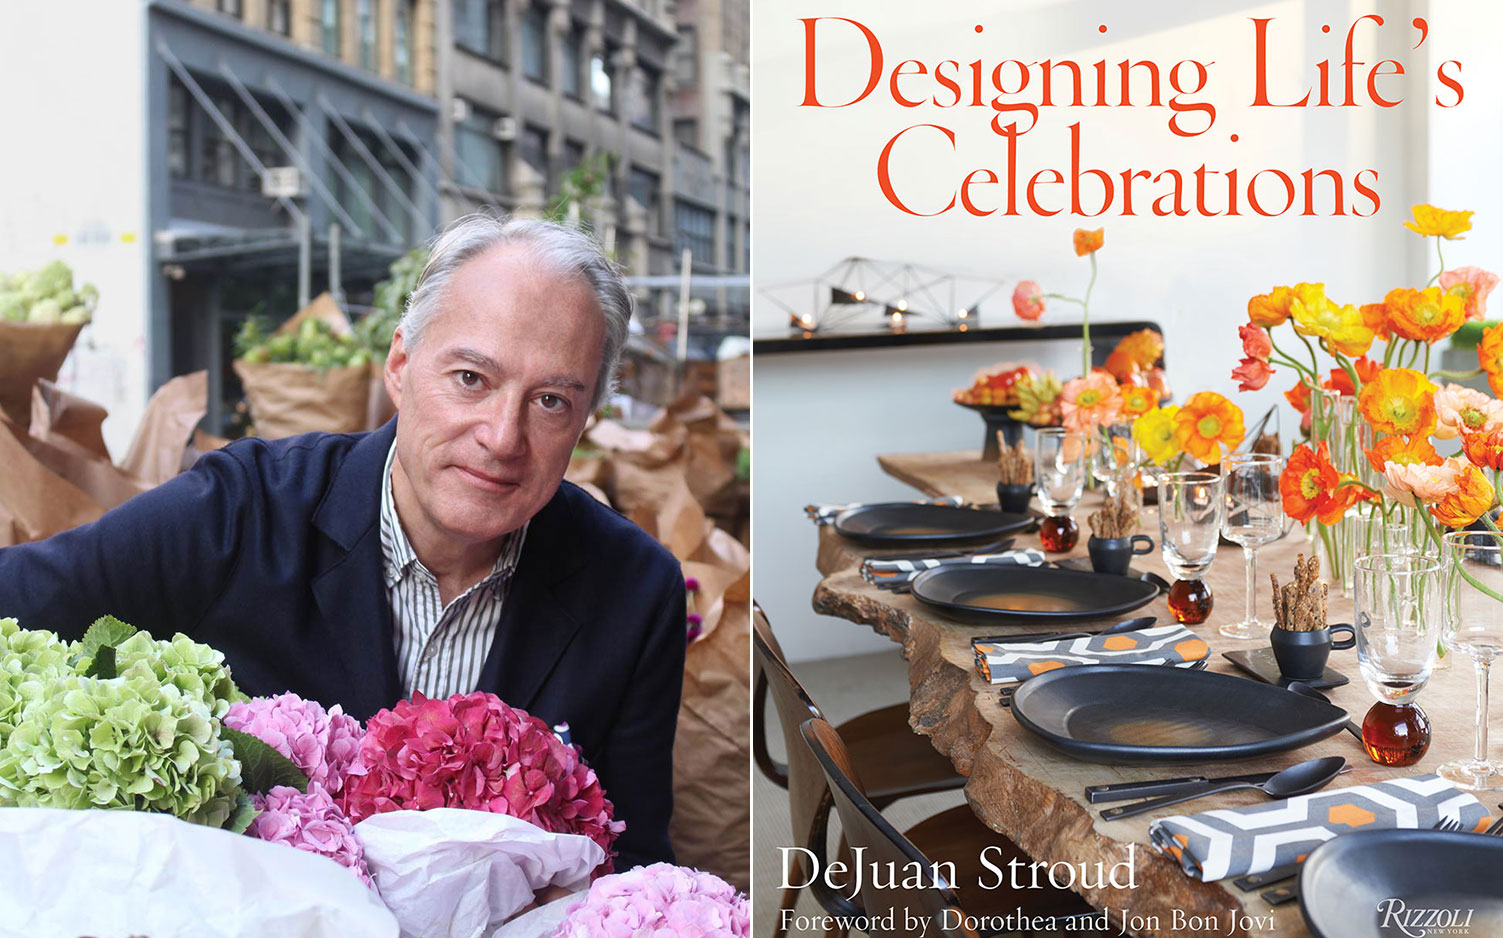 A photo of DeJuan Stroud and the cover of Designing Life's Celebrations. Author's photograph by Emily Goodnight. Book photography by Monica Buck.